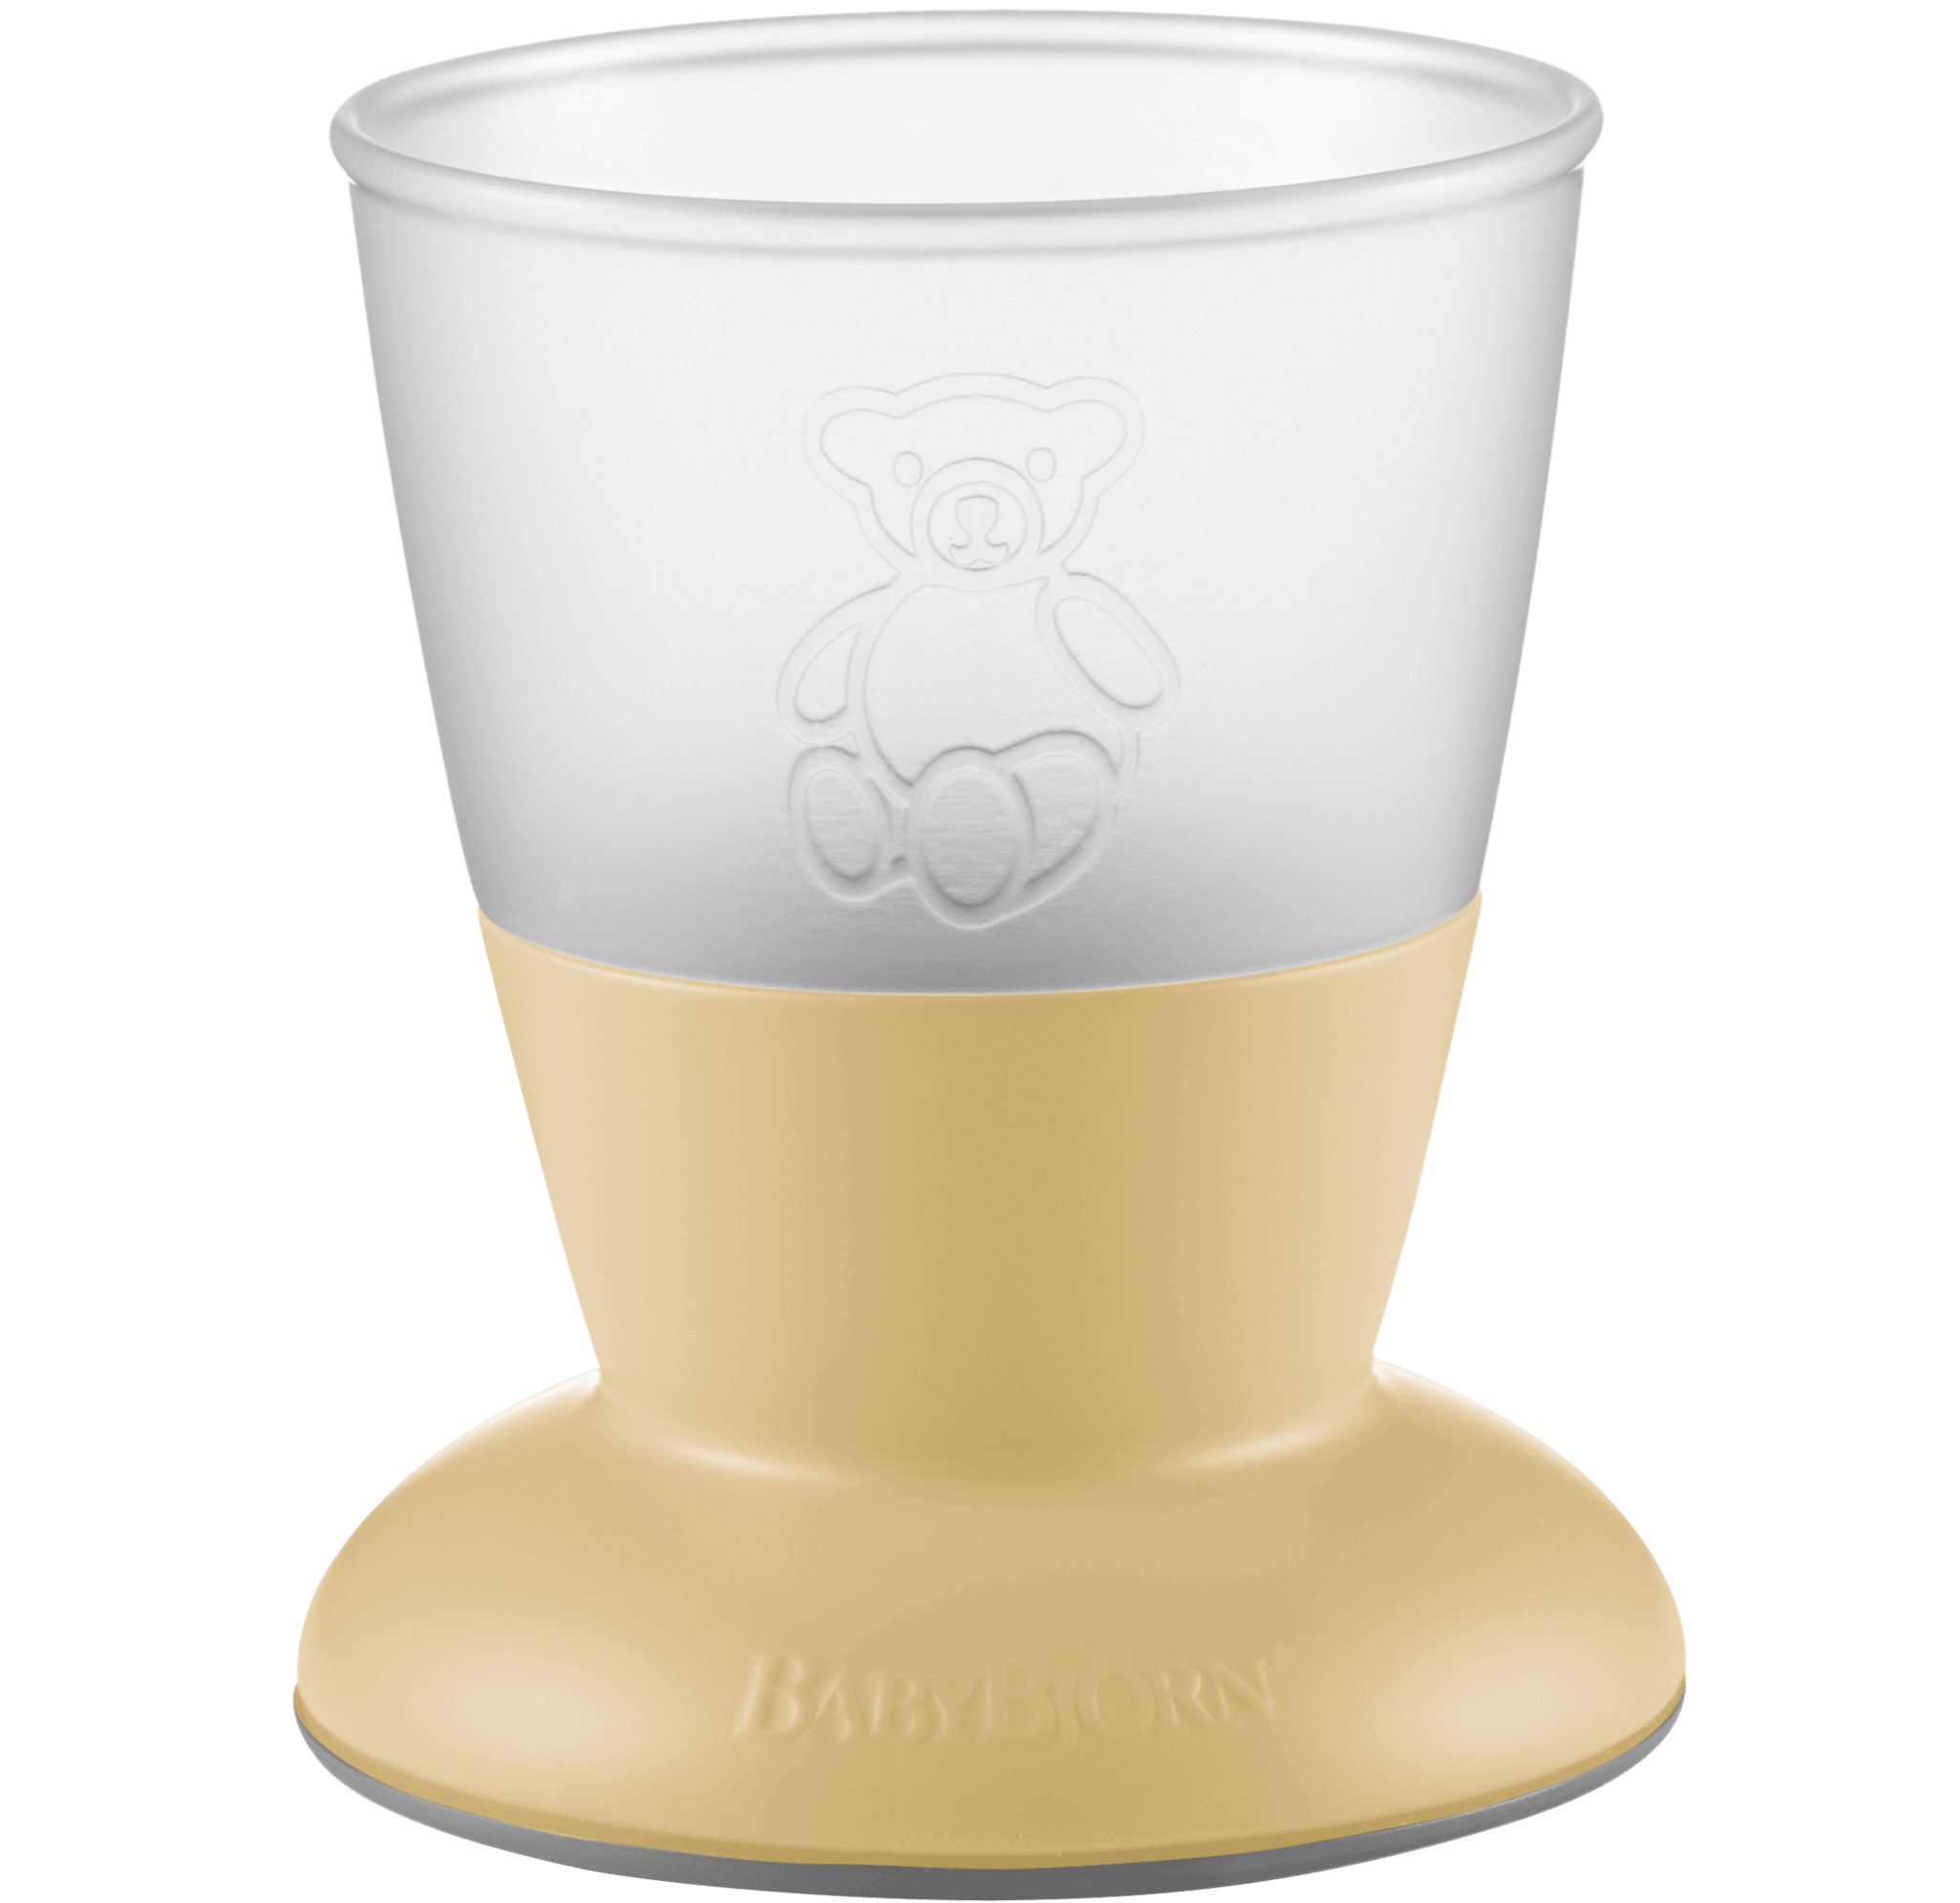 Baby Cup, 2-pack, Powder yellow, BPA-free plastic made in Sweden - BABYBJÖRN